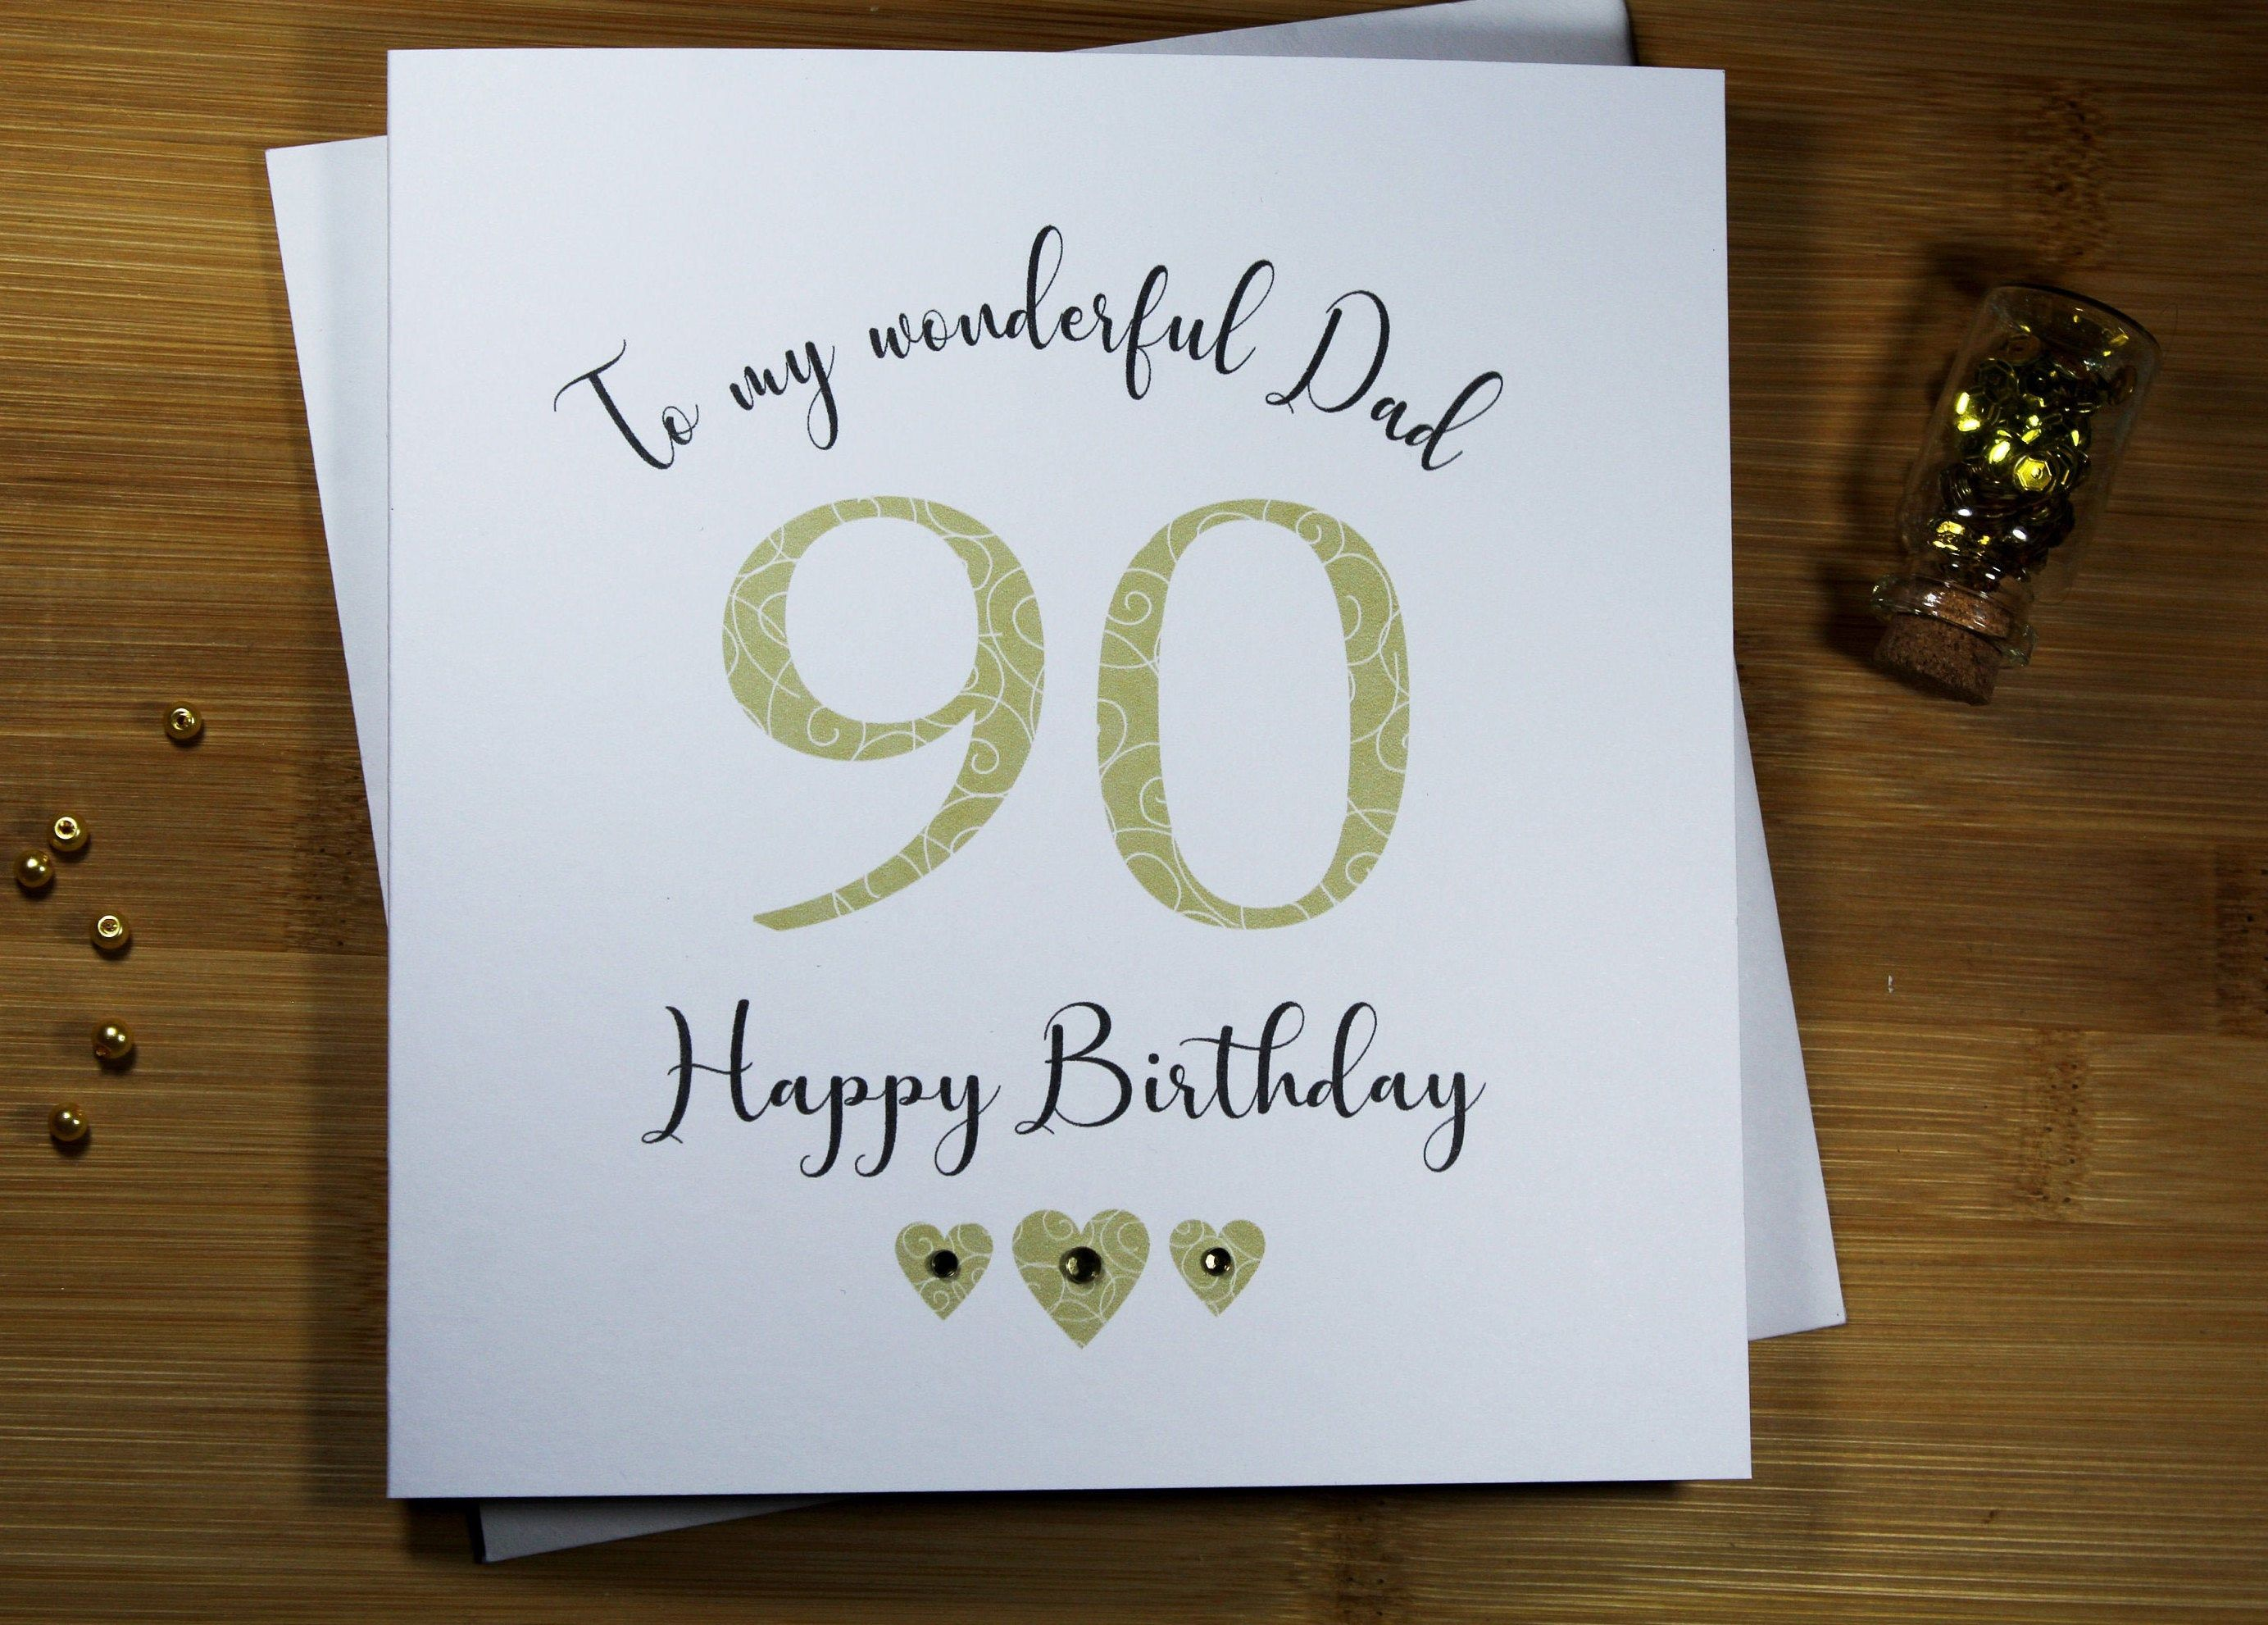 90th Birthday Card Male Dad Grandad Brother Husband Cousin Etsy 90th Birthday Cards Birthday Cards Birthday Cards For Men